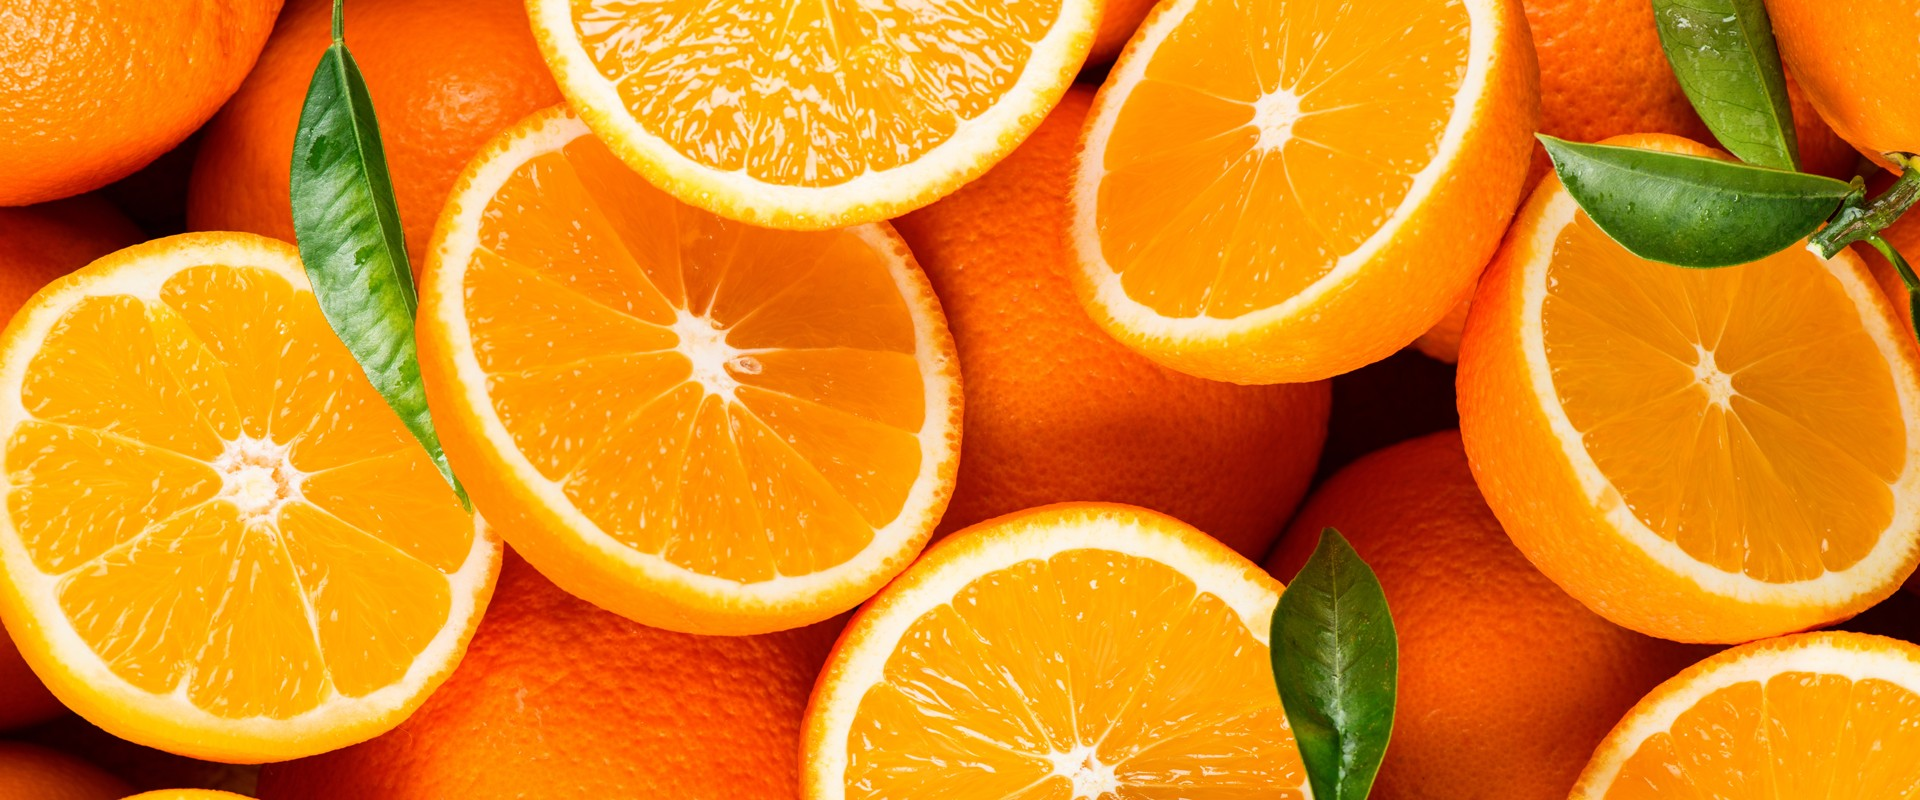 Navel-Oranges-Product